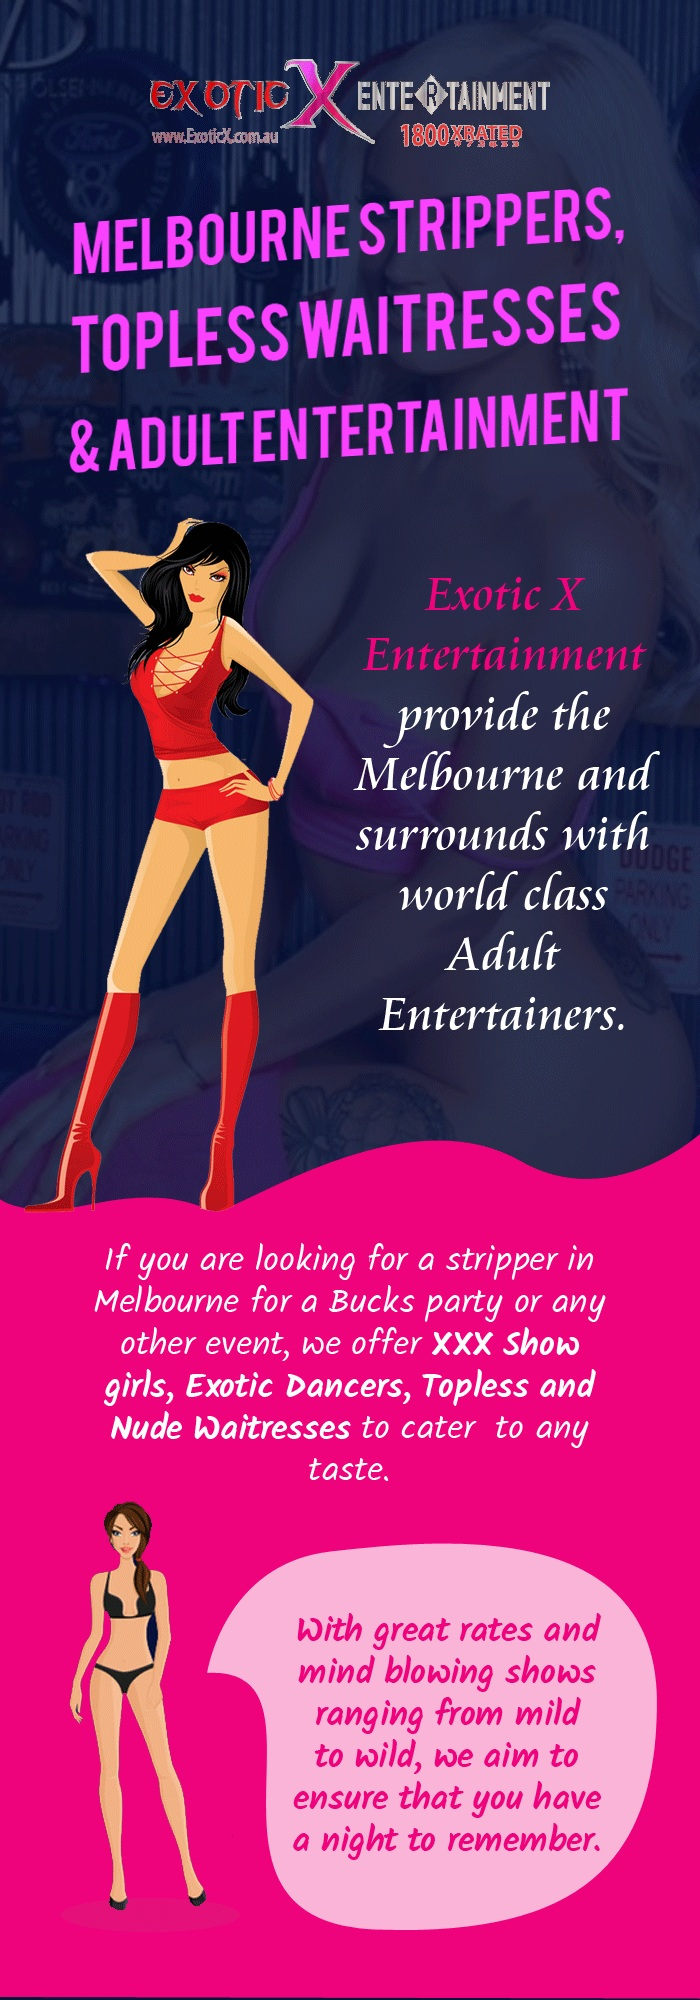 Hire Top-Class Strippers & Topless Waitresses in Melbourne from Exotic X Entertainment